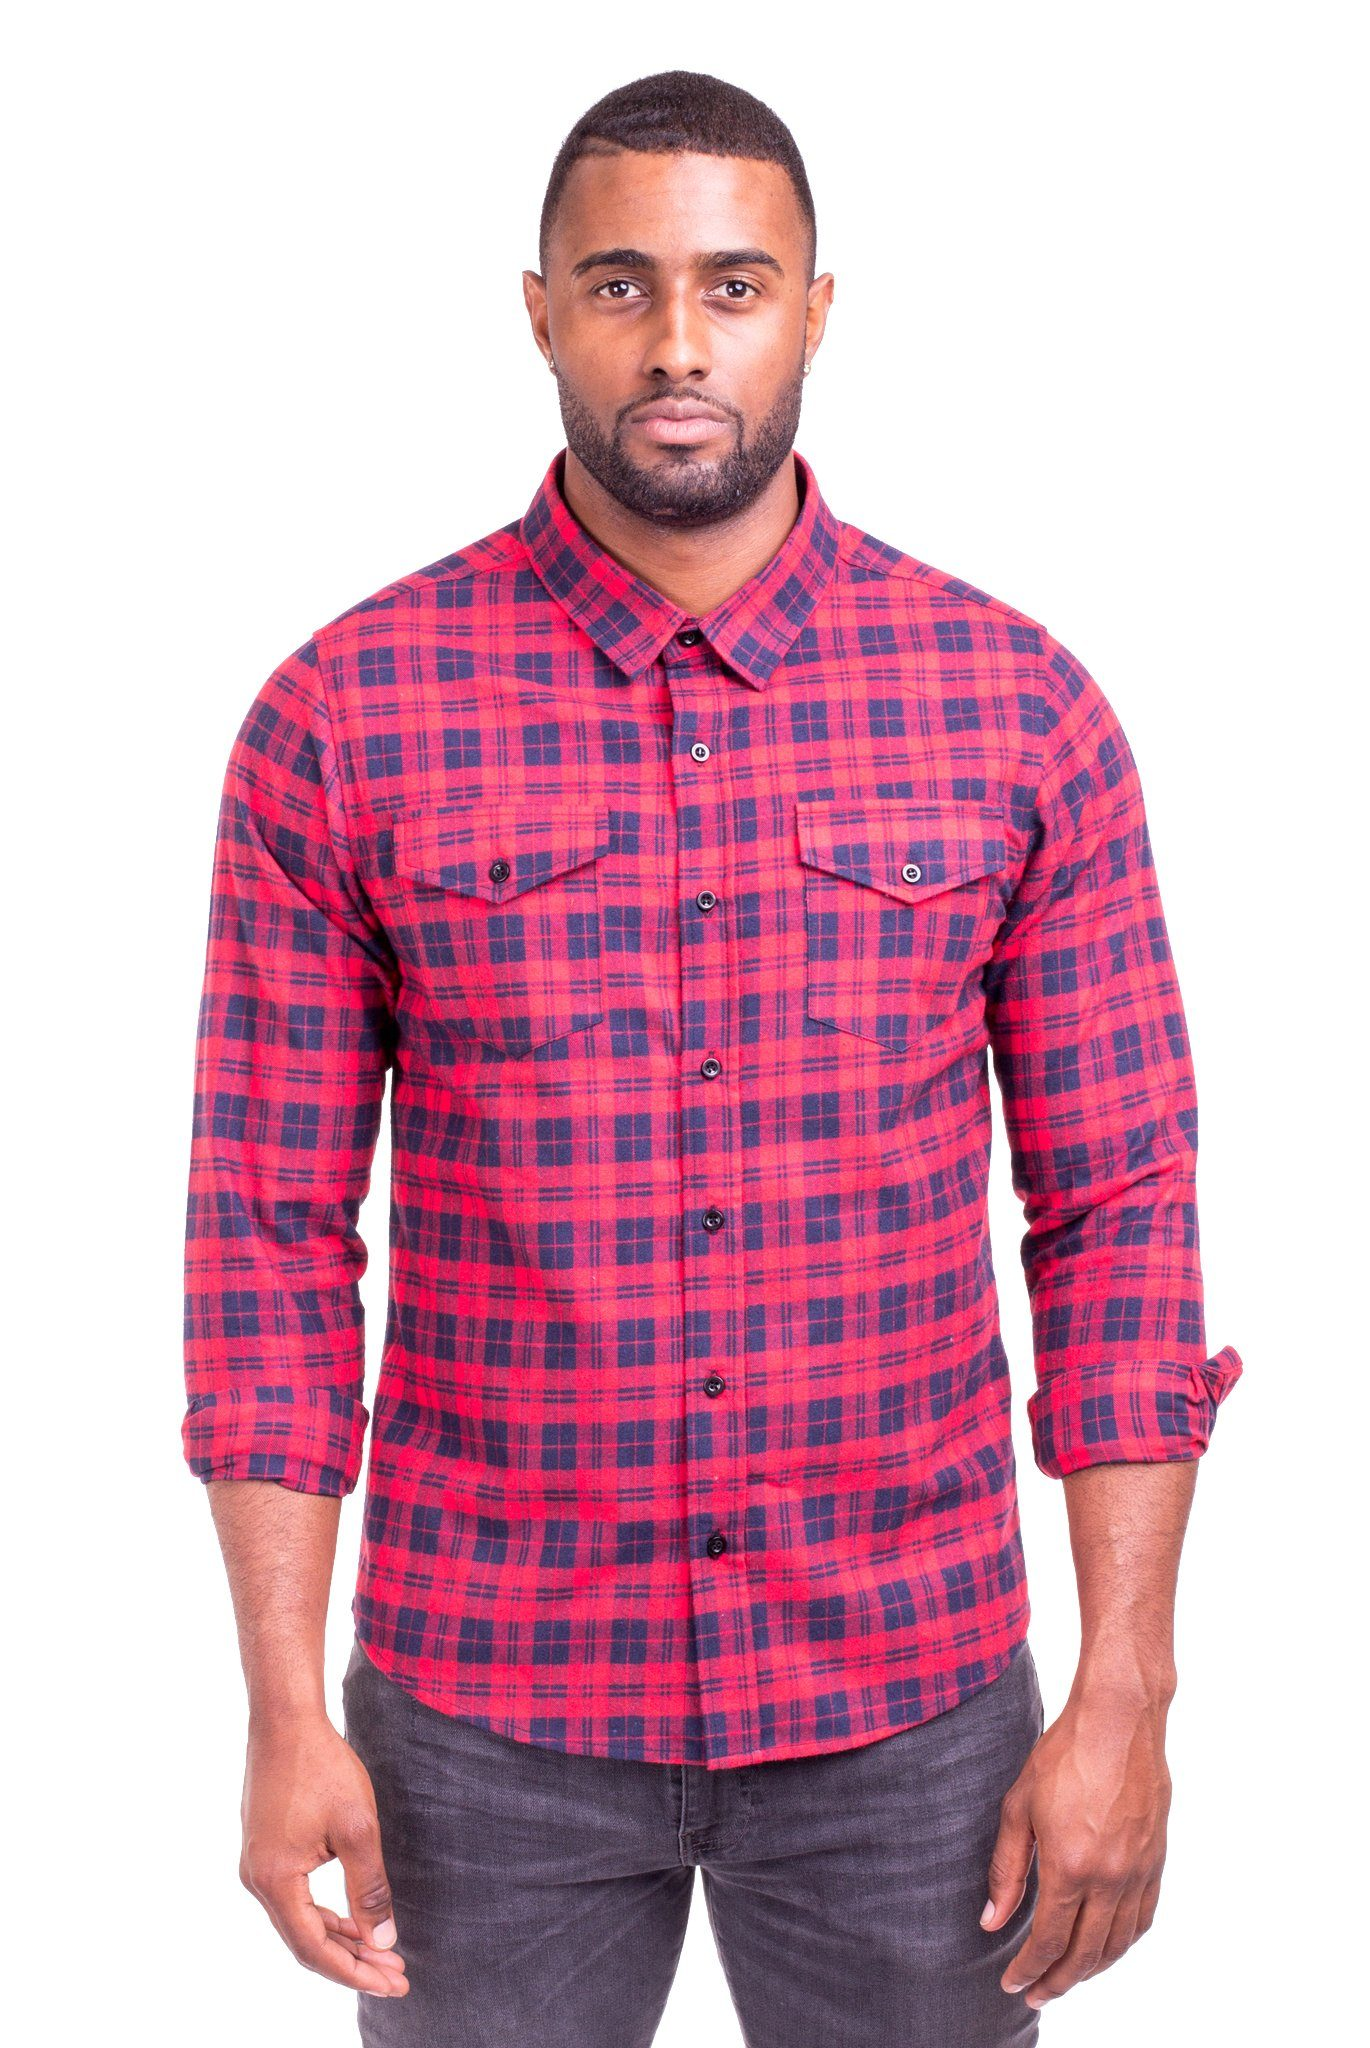 Johnny Red Blue Plaid Flannel Shirt Men S Casual Shirts Poor